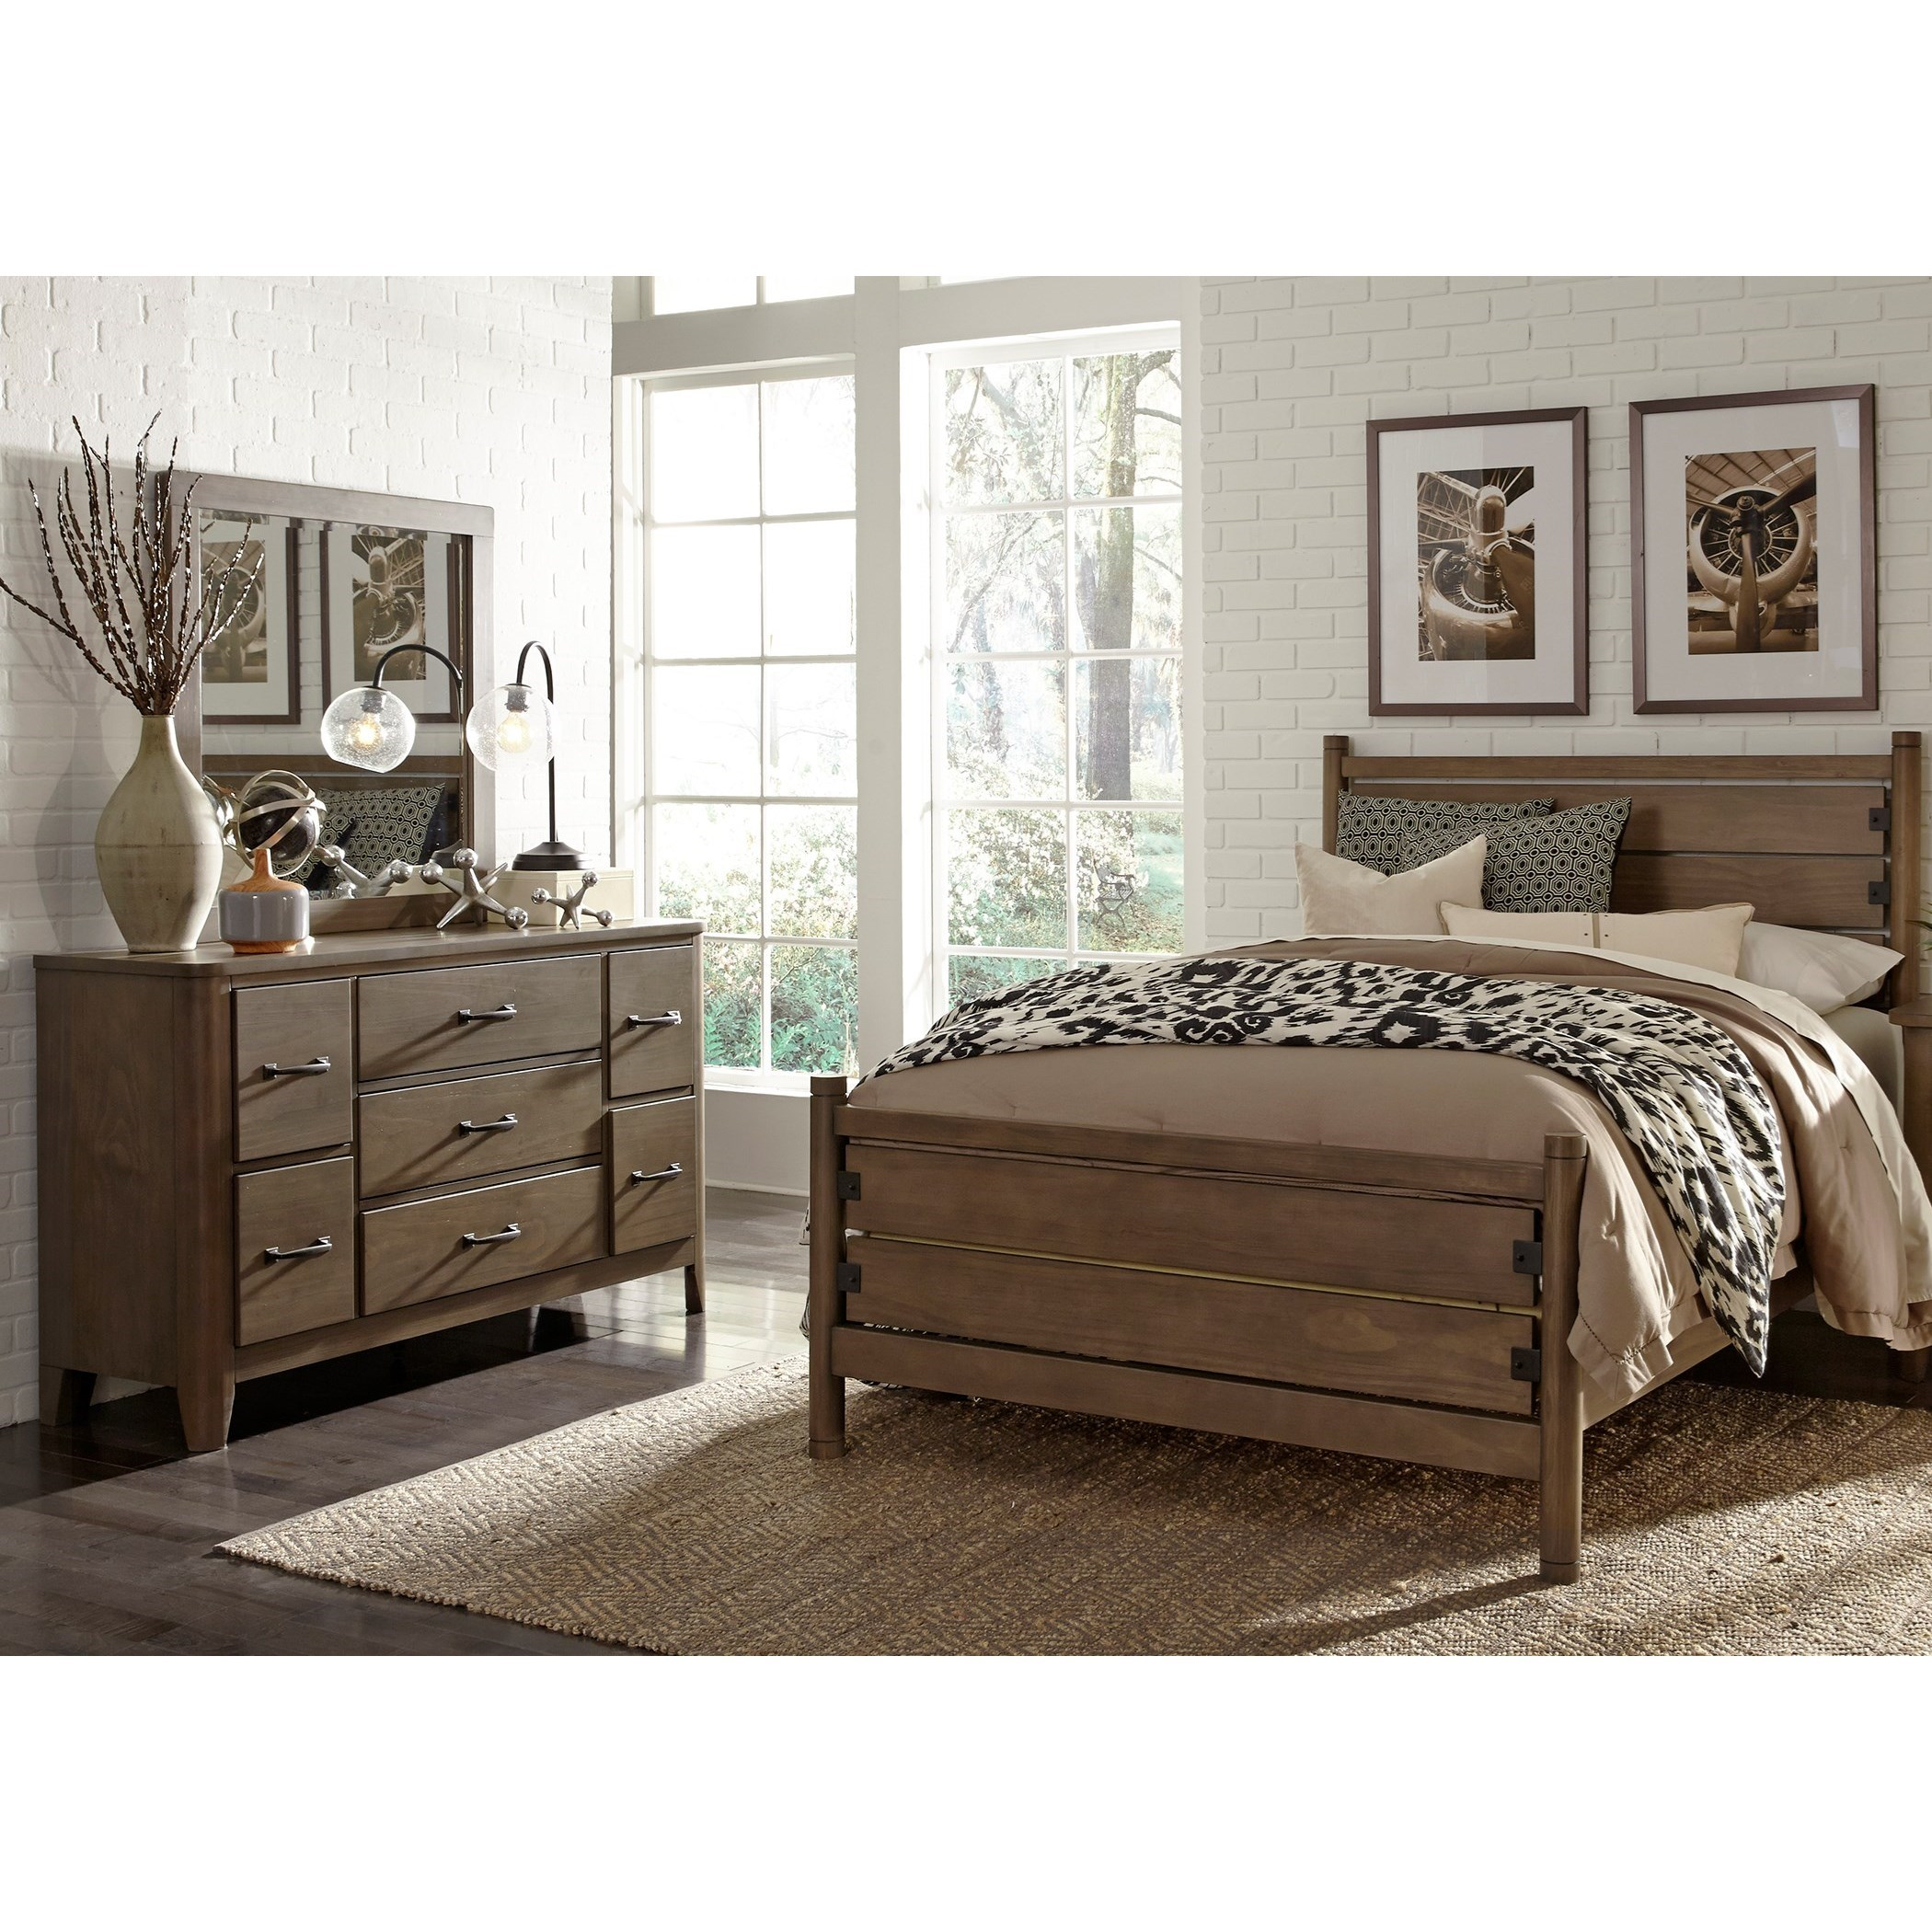 Liberty furniture cottonwood creek full bedroom group for Bedroom furniture groups